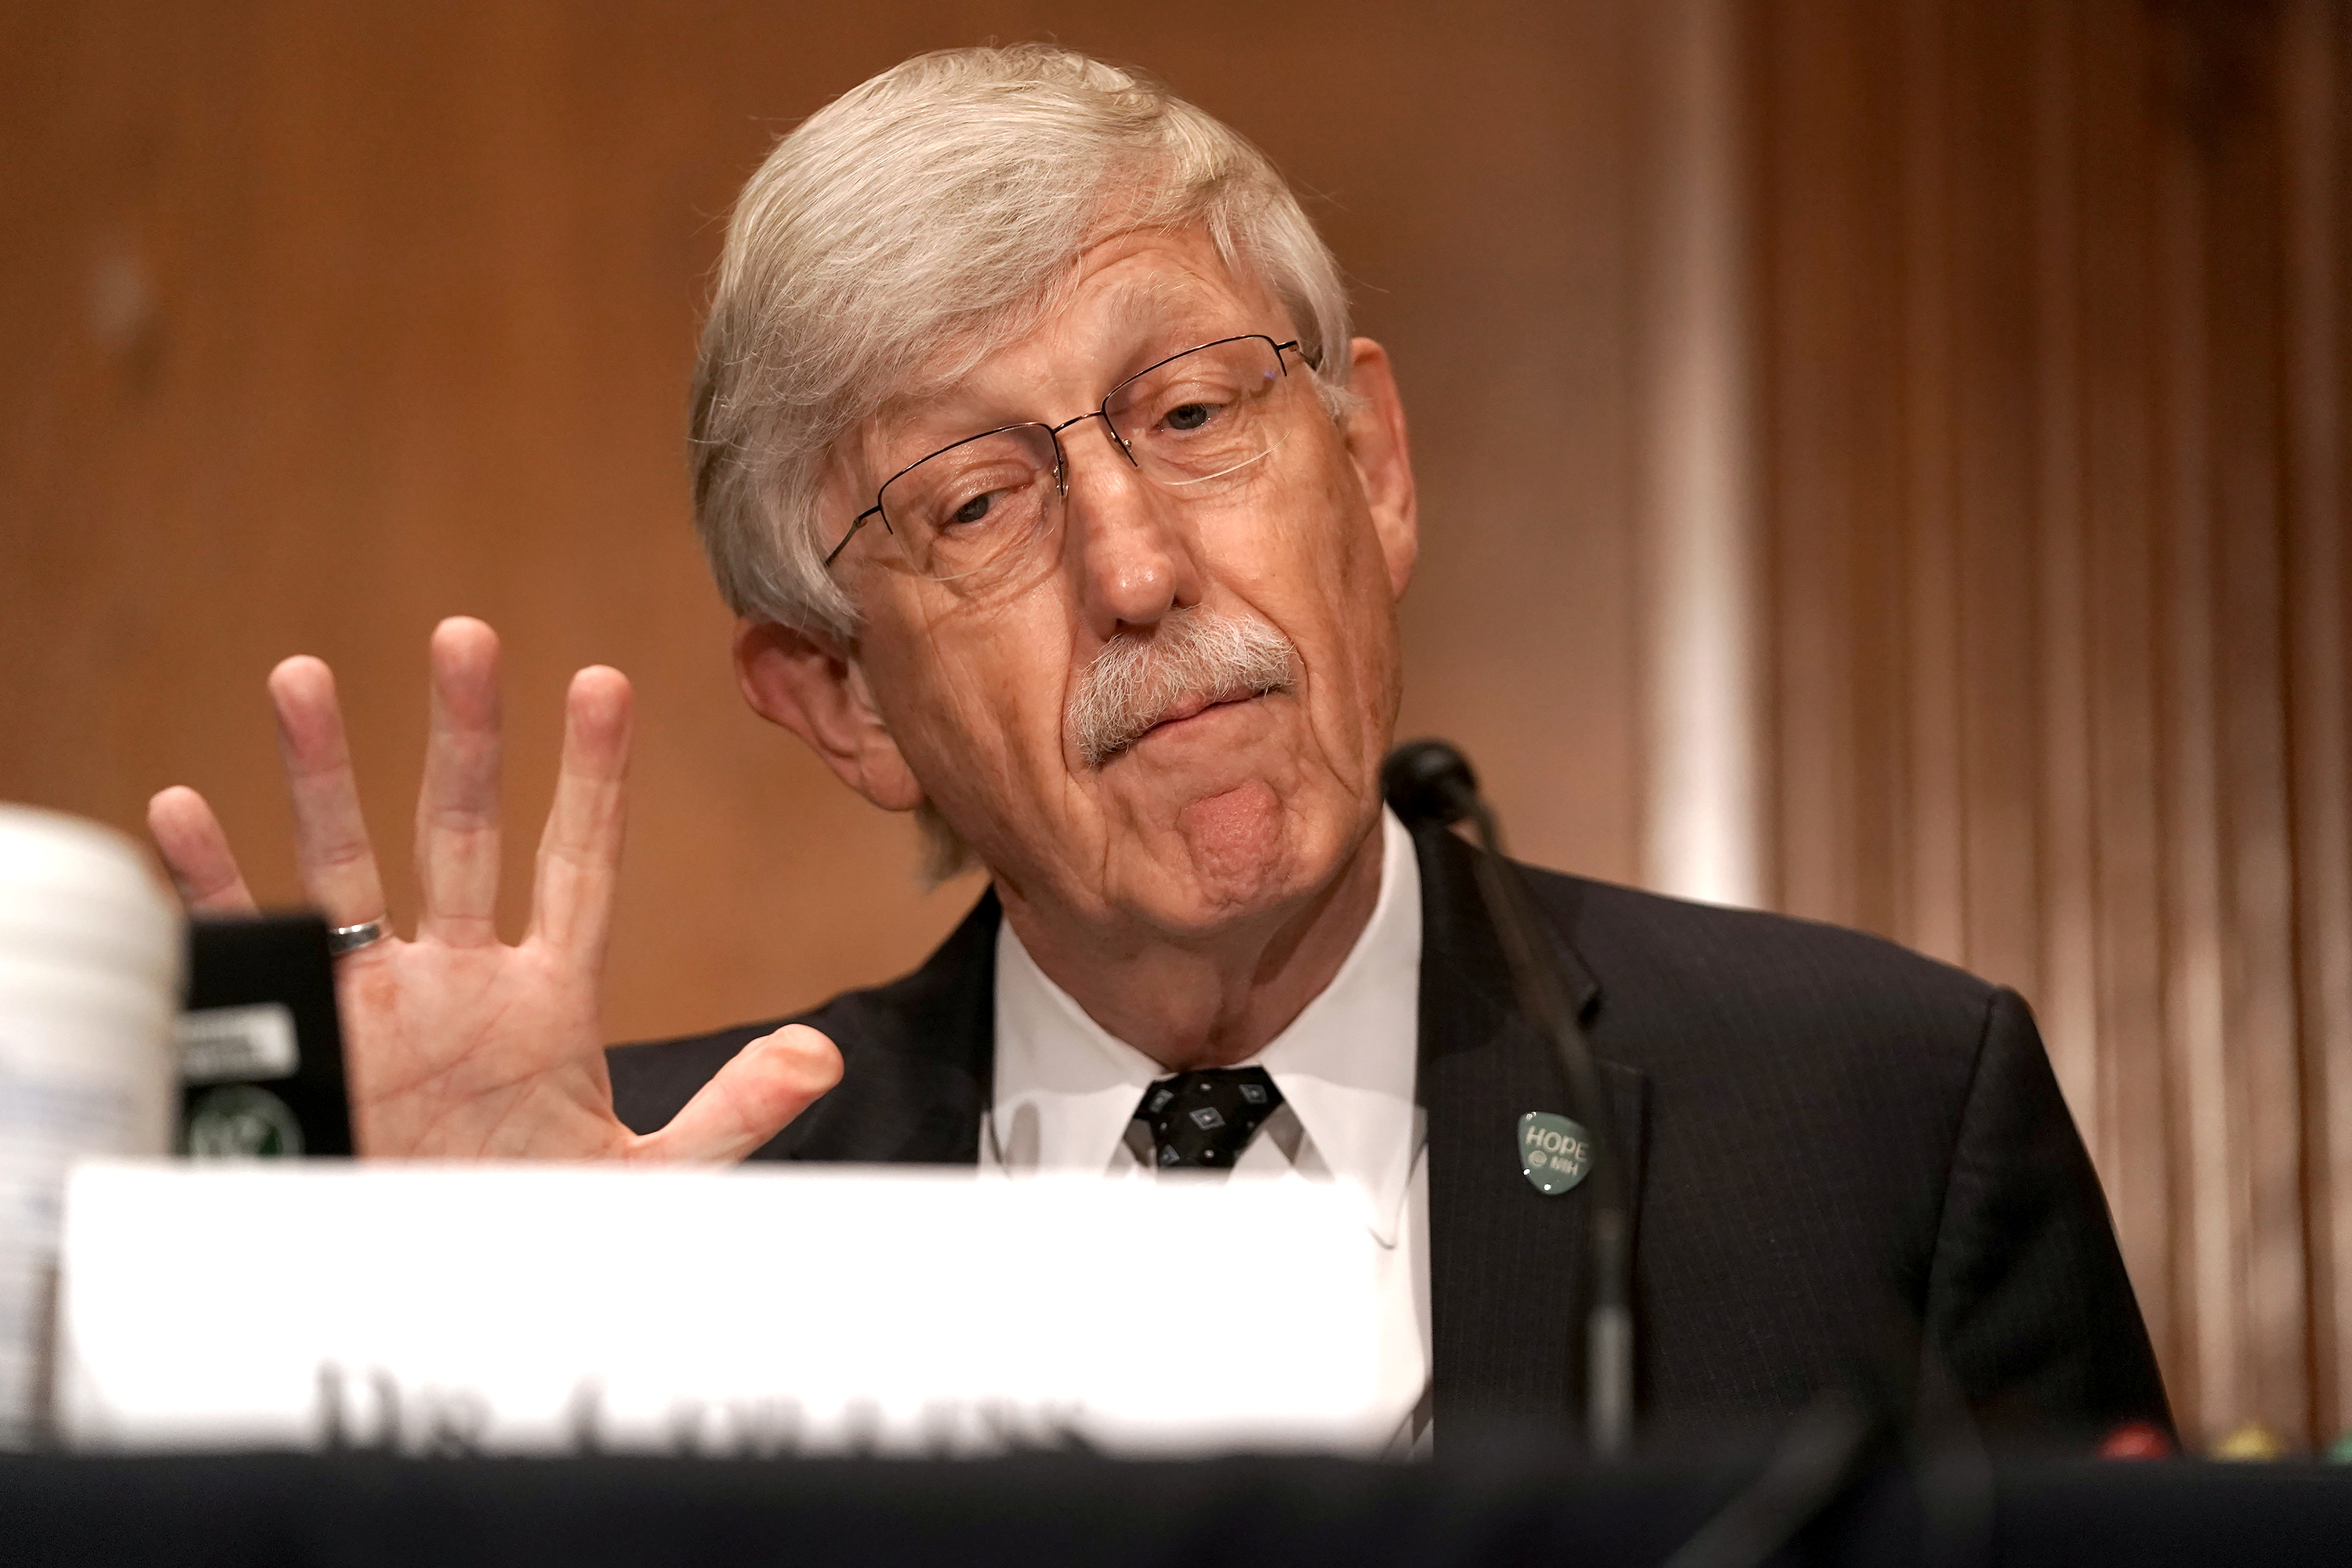 Dr Francis Collins, Director of the National Institutes of Health, testifies during a Senate Health, Education, Labor and Pensions Committee hearing in Washington, U.S., September 9, 2020. Greg Nash/Pool via REUTERS